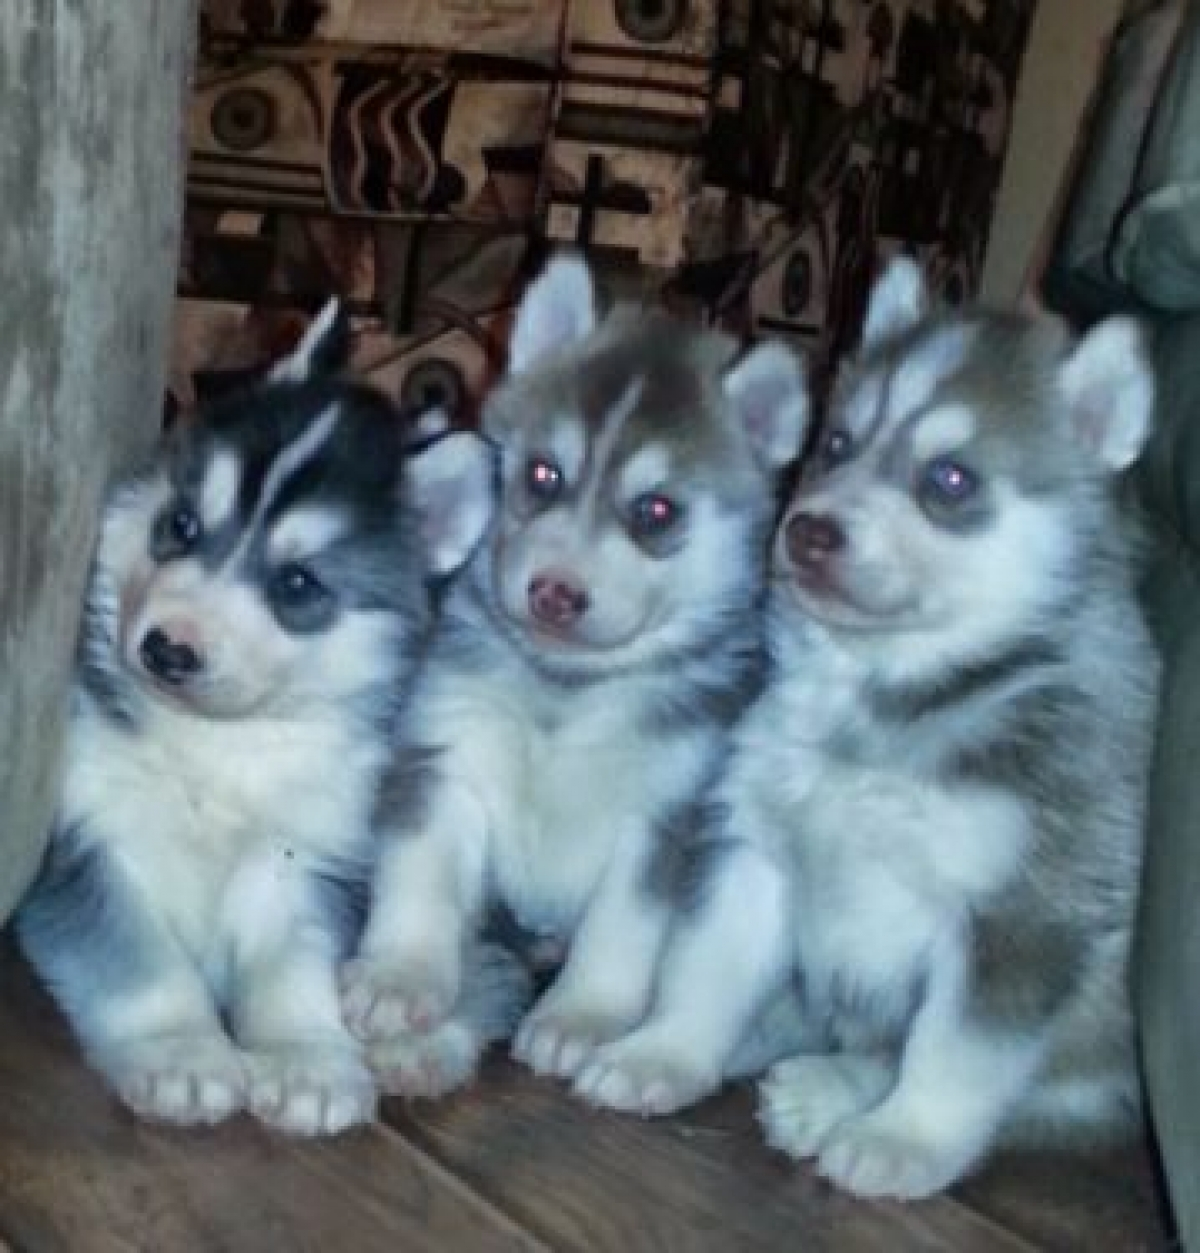 Husky puppies for adoption in california - Husky Puppies For Sale In Greensboro Nc Bellete Siberian Husky Puppies For Sale